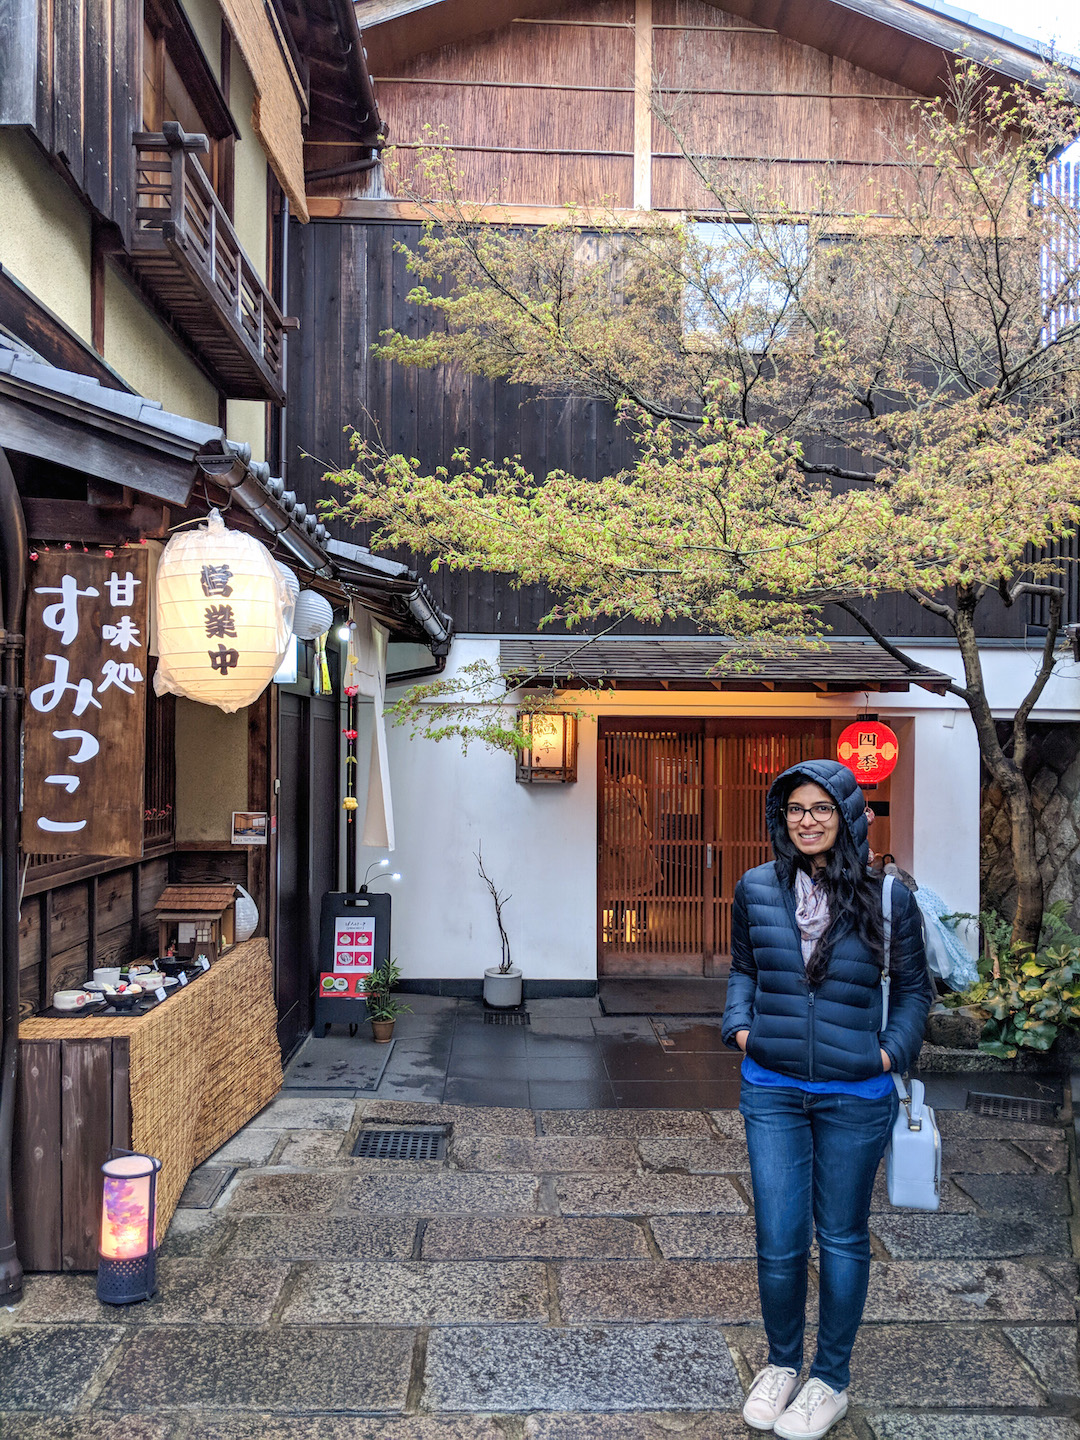 Courtyard in the by lanes of Higashiyama